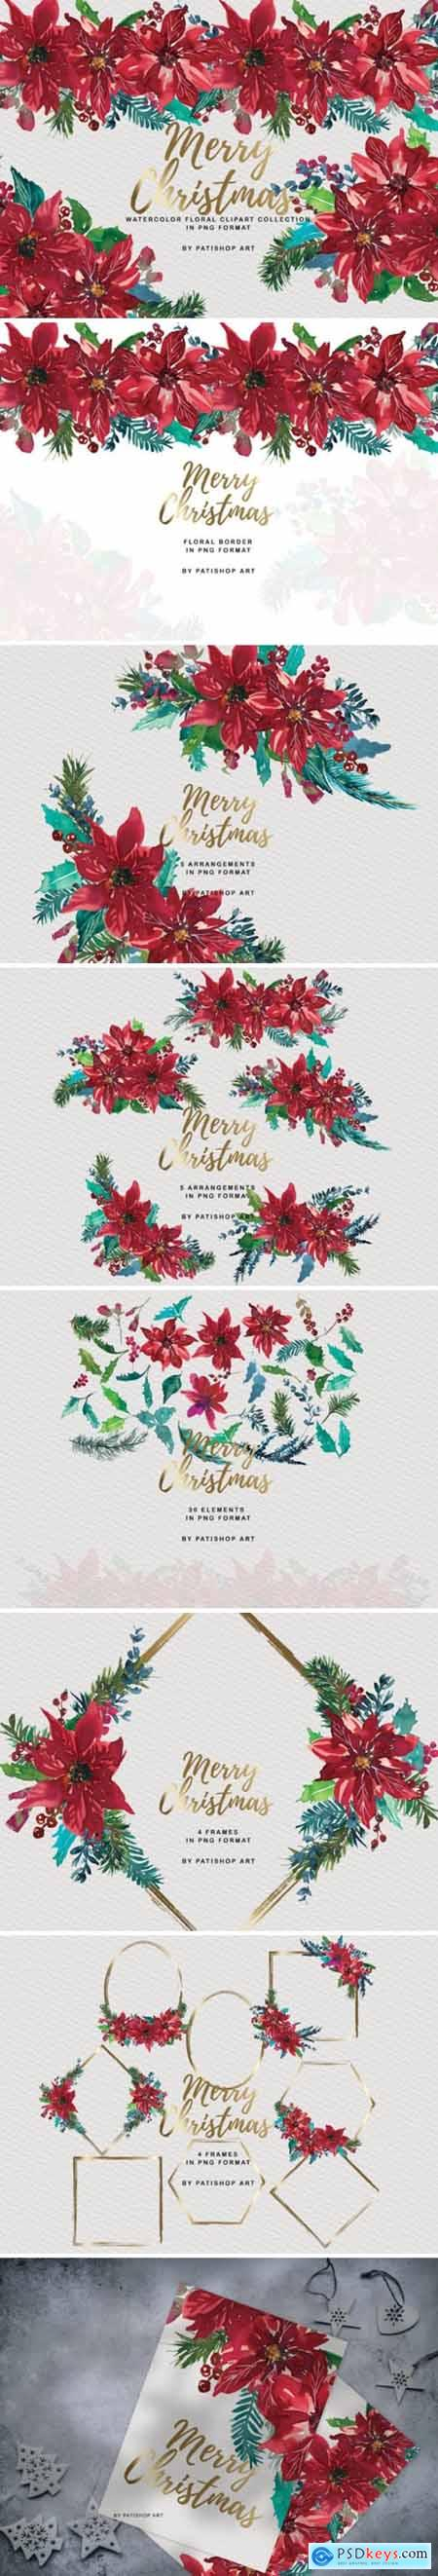 Watercolor Poinsettia Christmas Clipart 1815426